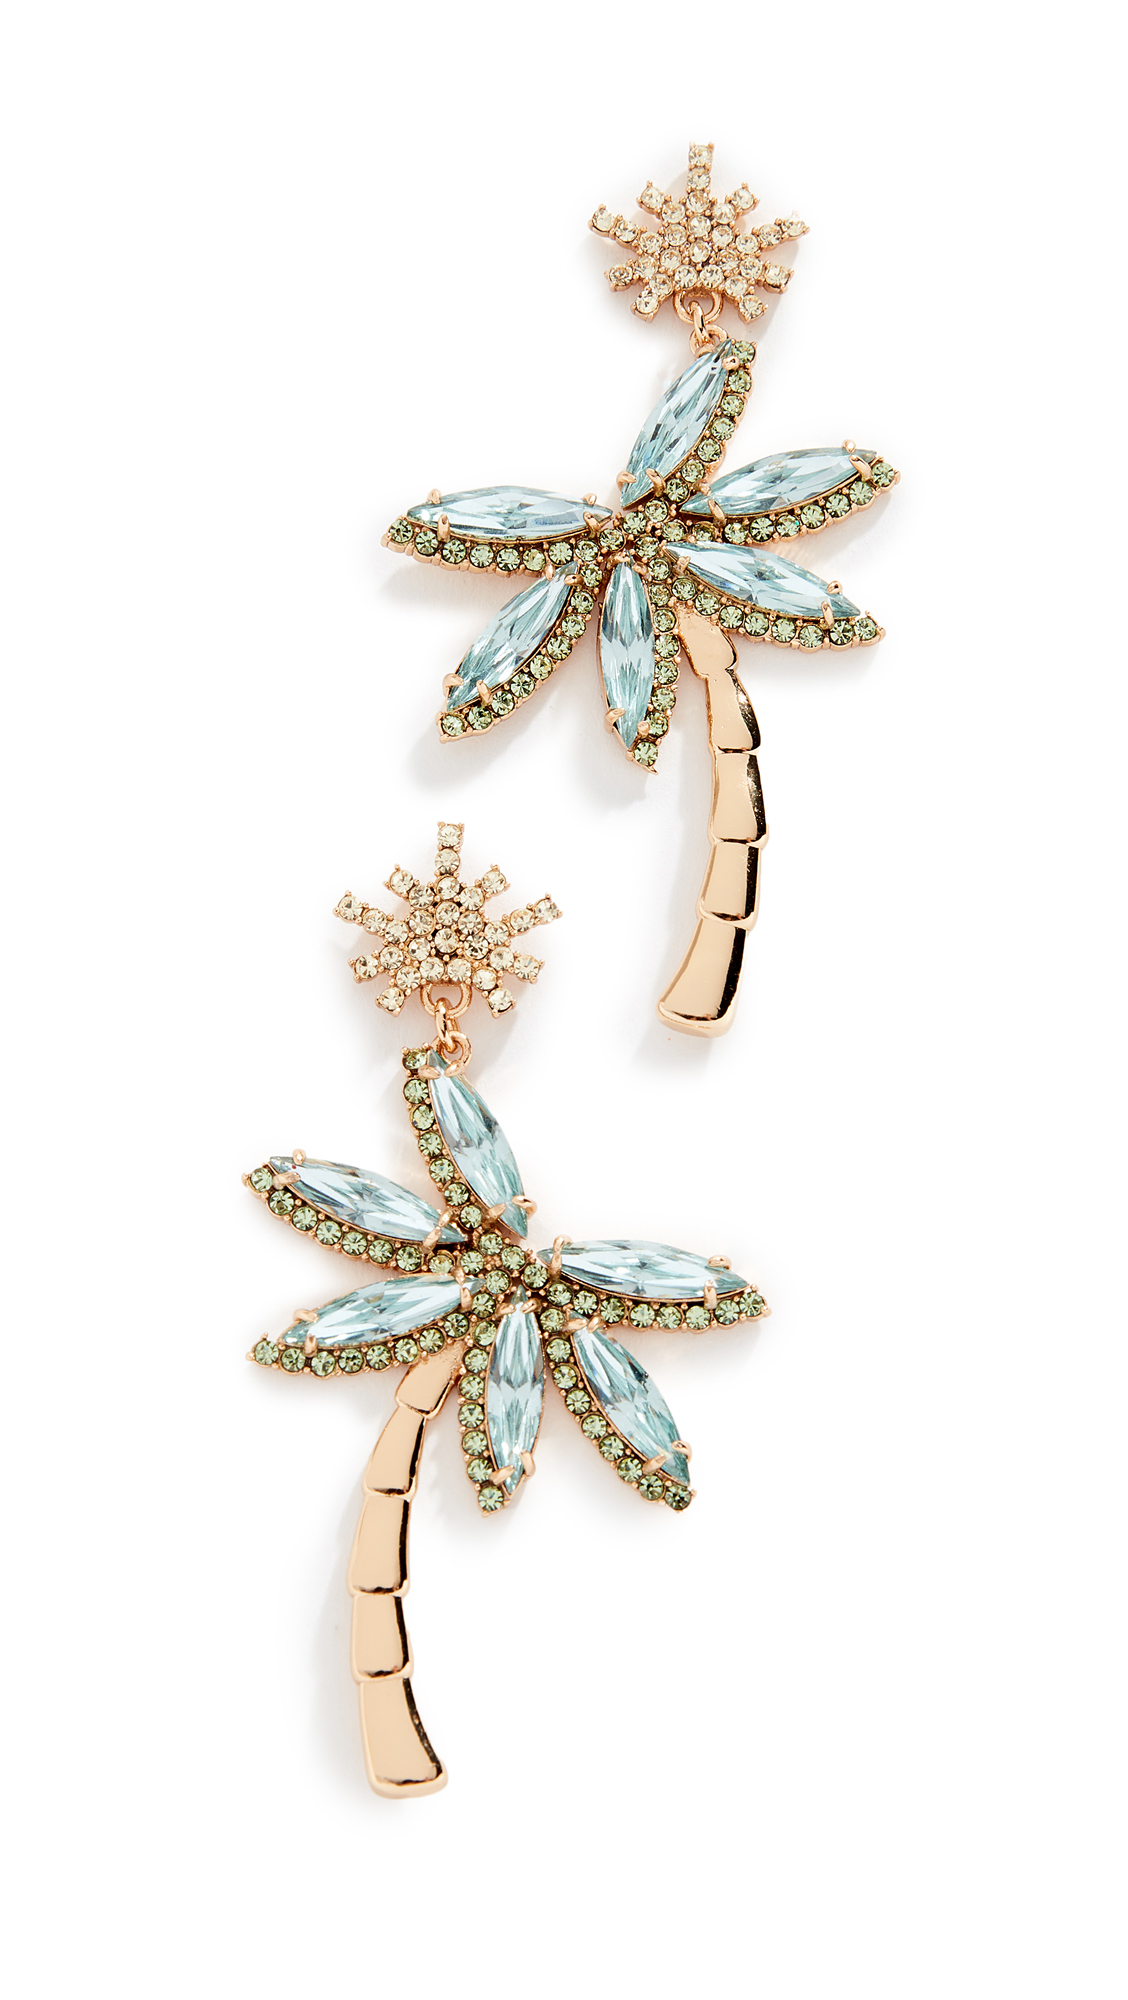 Kate Spade New York California Dreaming Palm Tree Statement Earrings